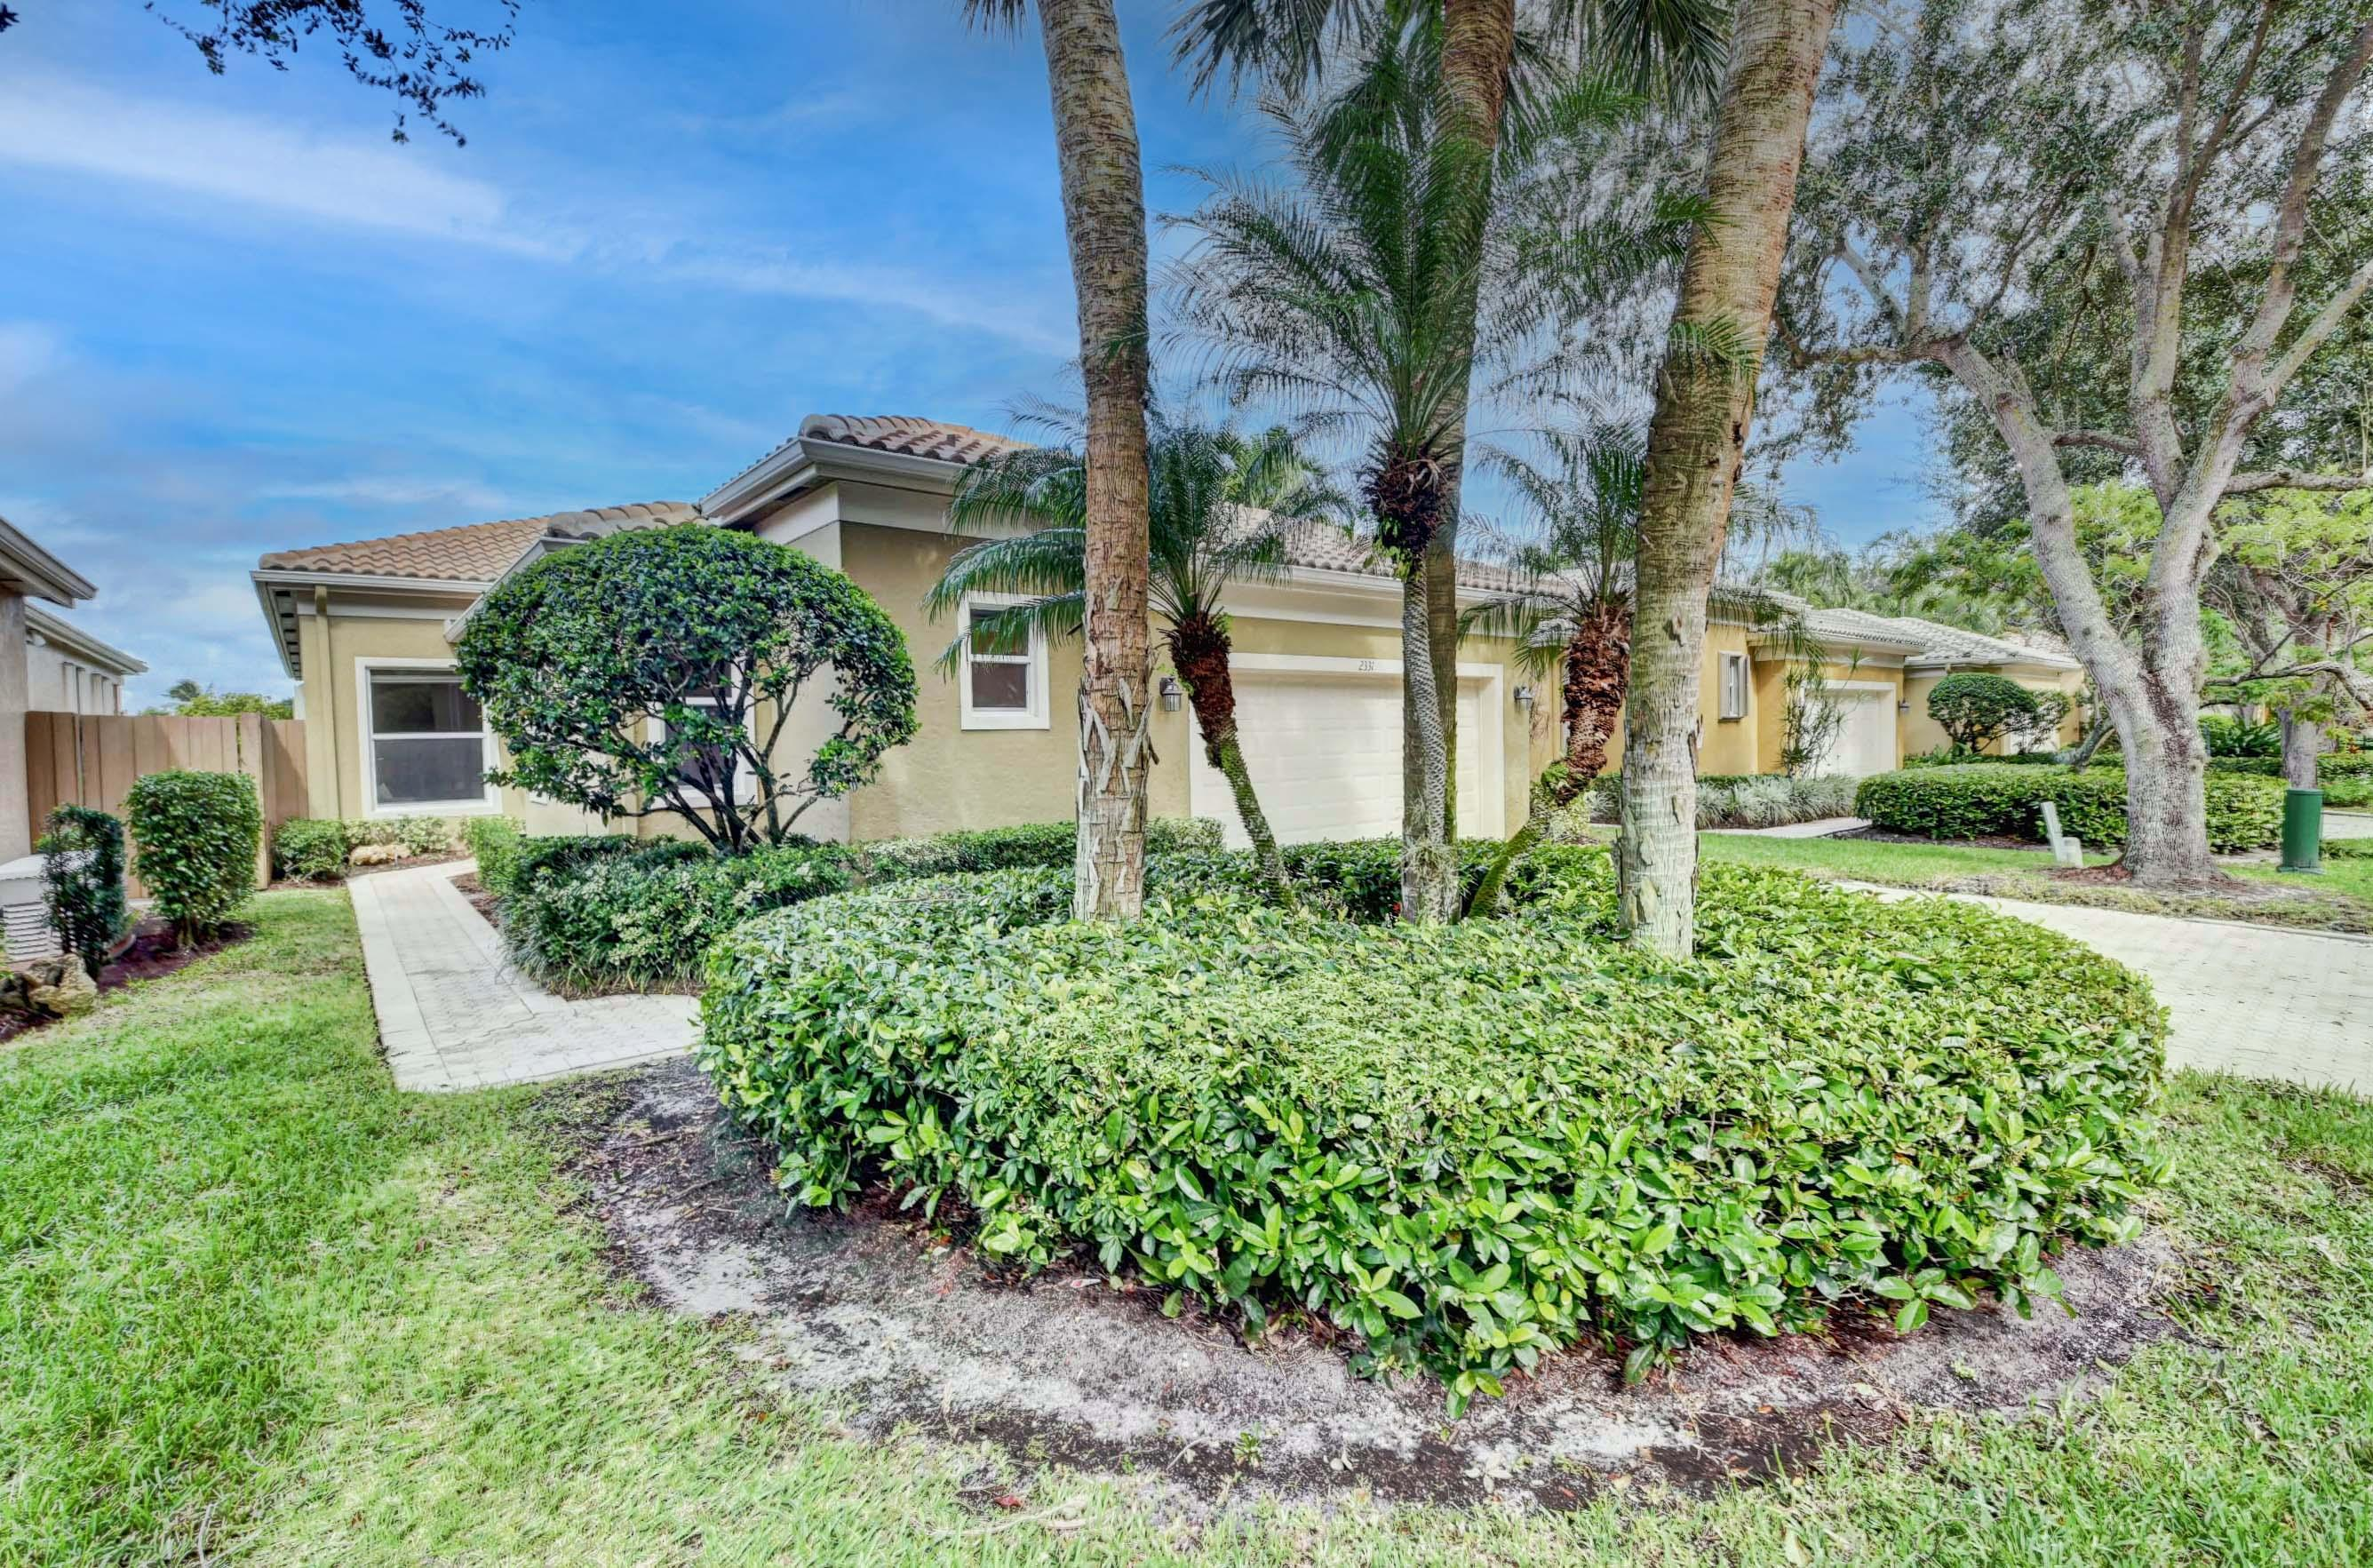 Details for 2331 66th Drive Nw, Boca Raton, FL 33496